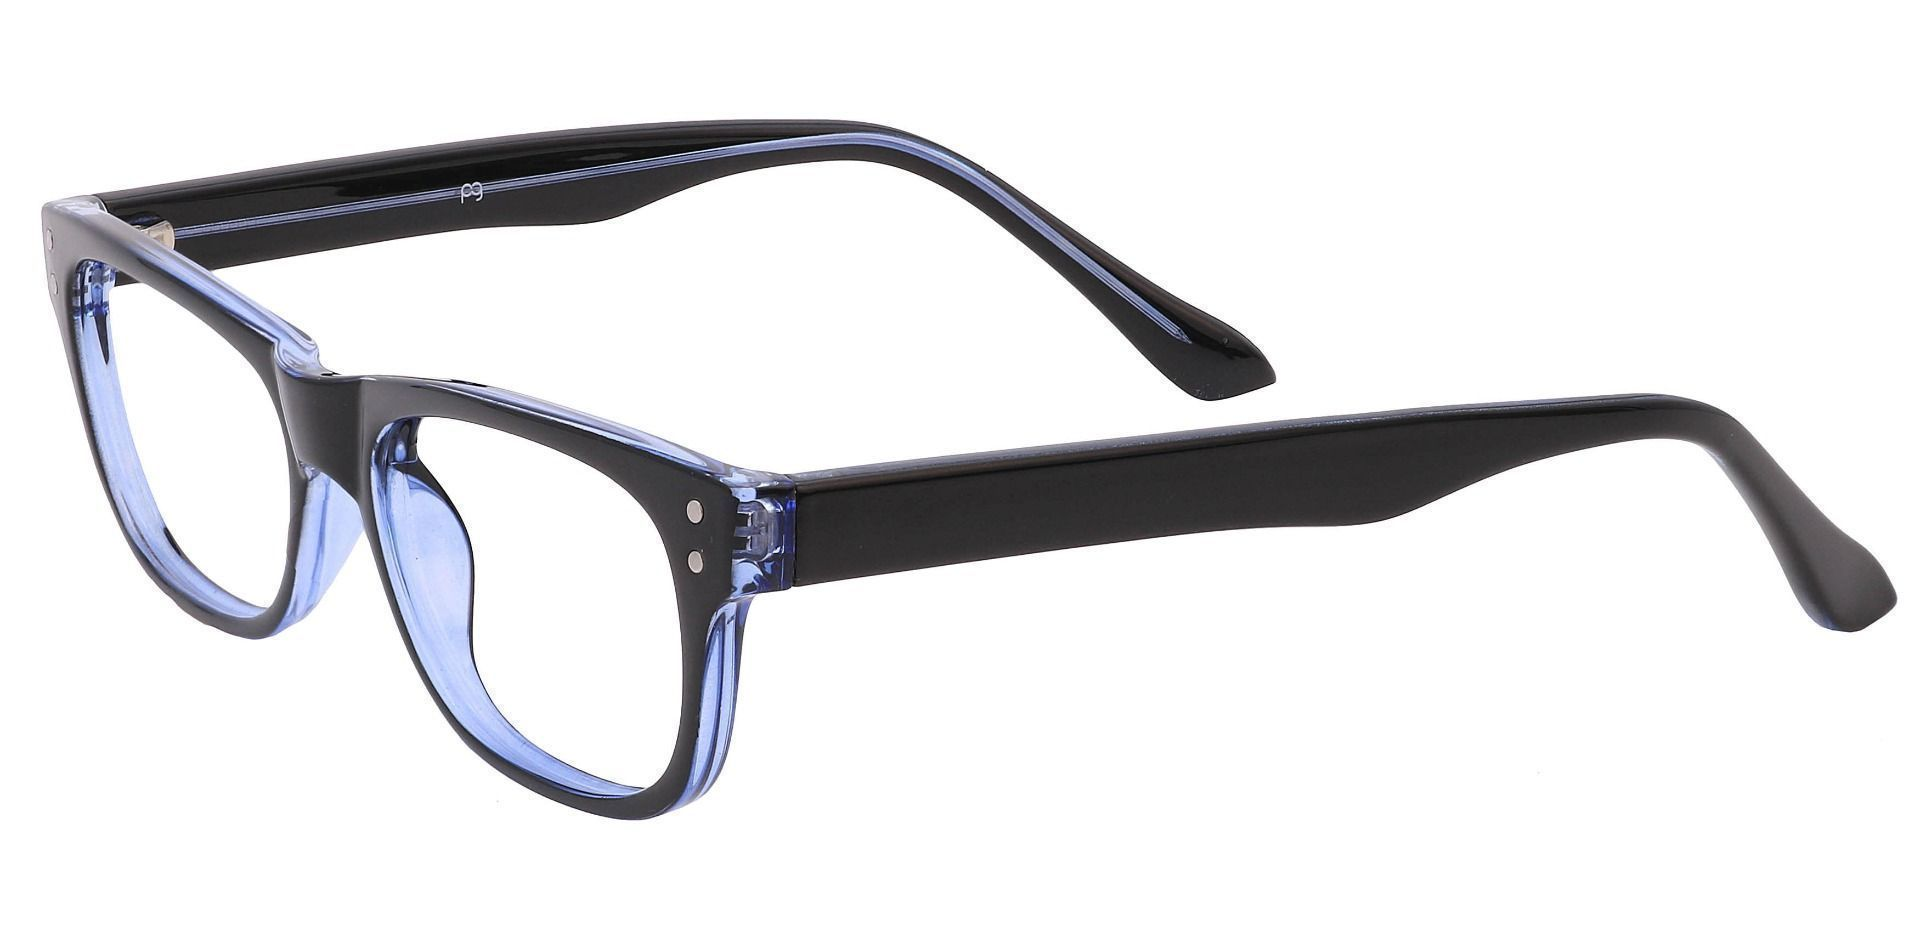 Murphy Rectangle Prescription Glasses - The Frame Is Blue And Black